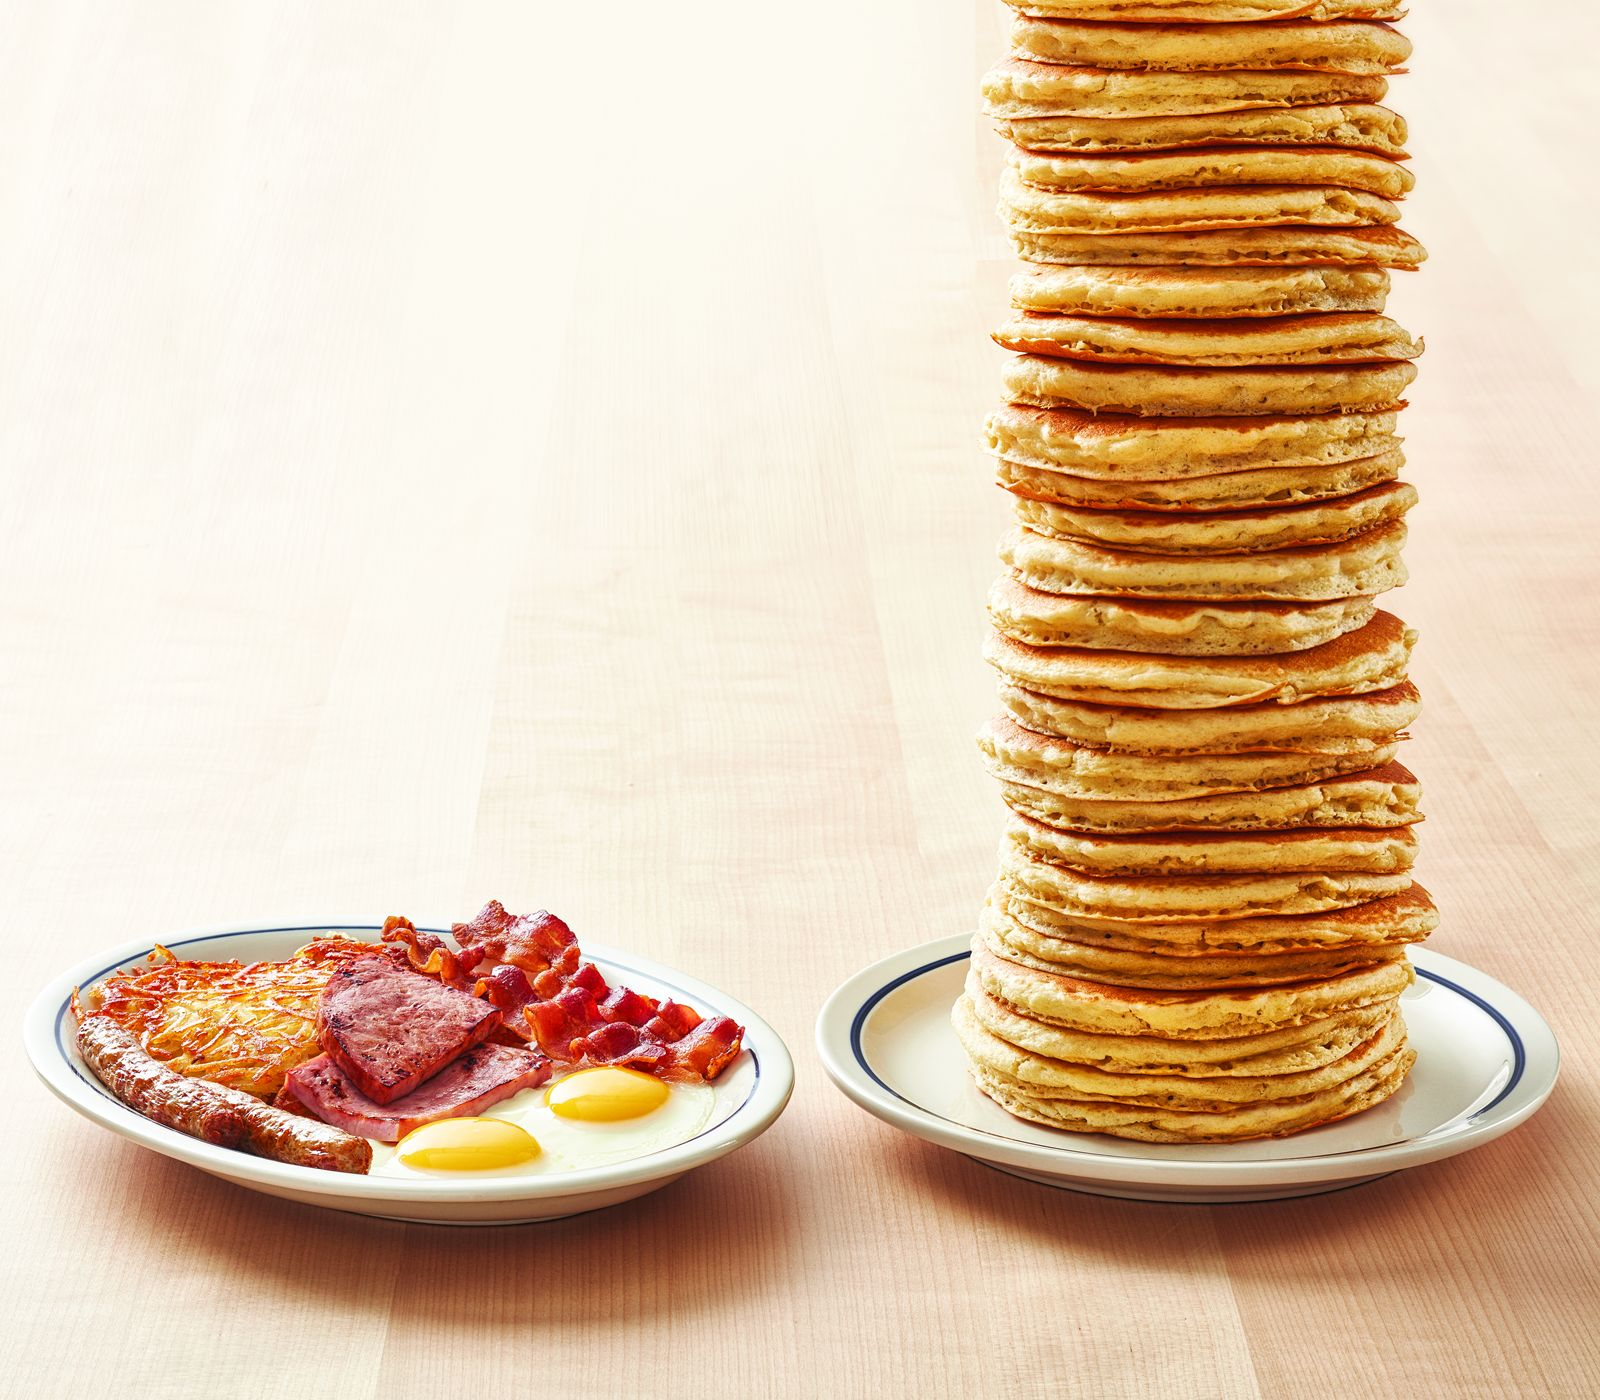 """IHOP Brings Back Free """"All You Can Eat Pancakes"""" with the Purchase of Any Breakfast Combo*"""